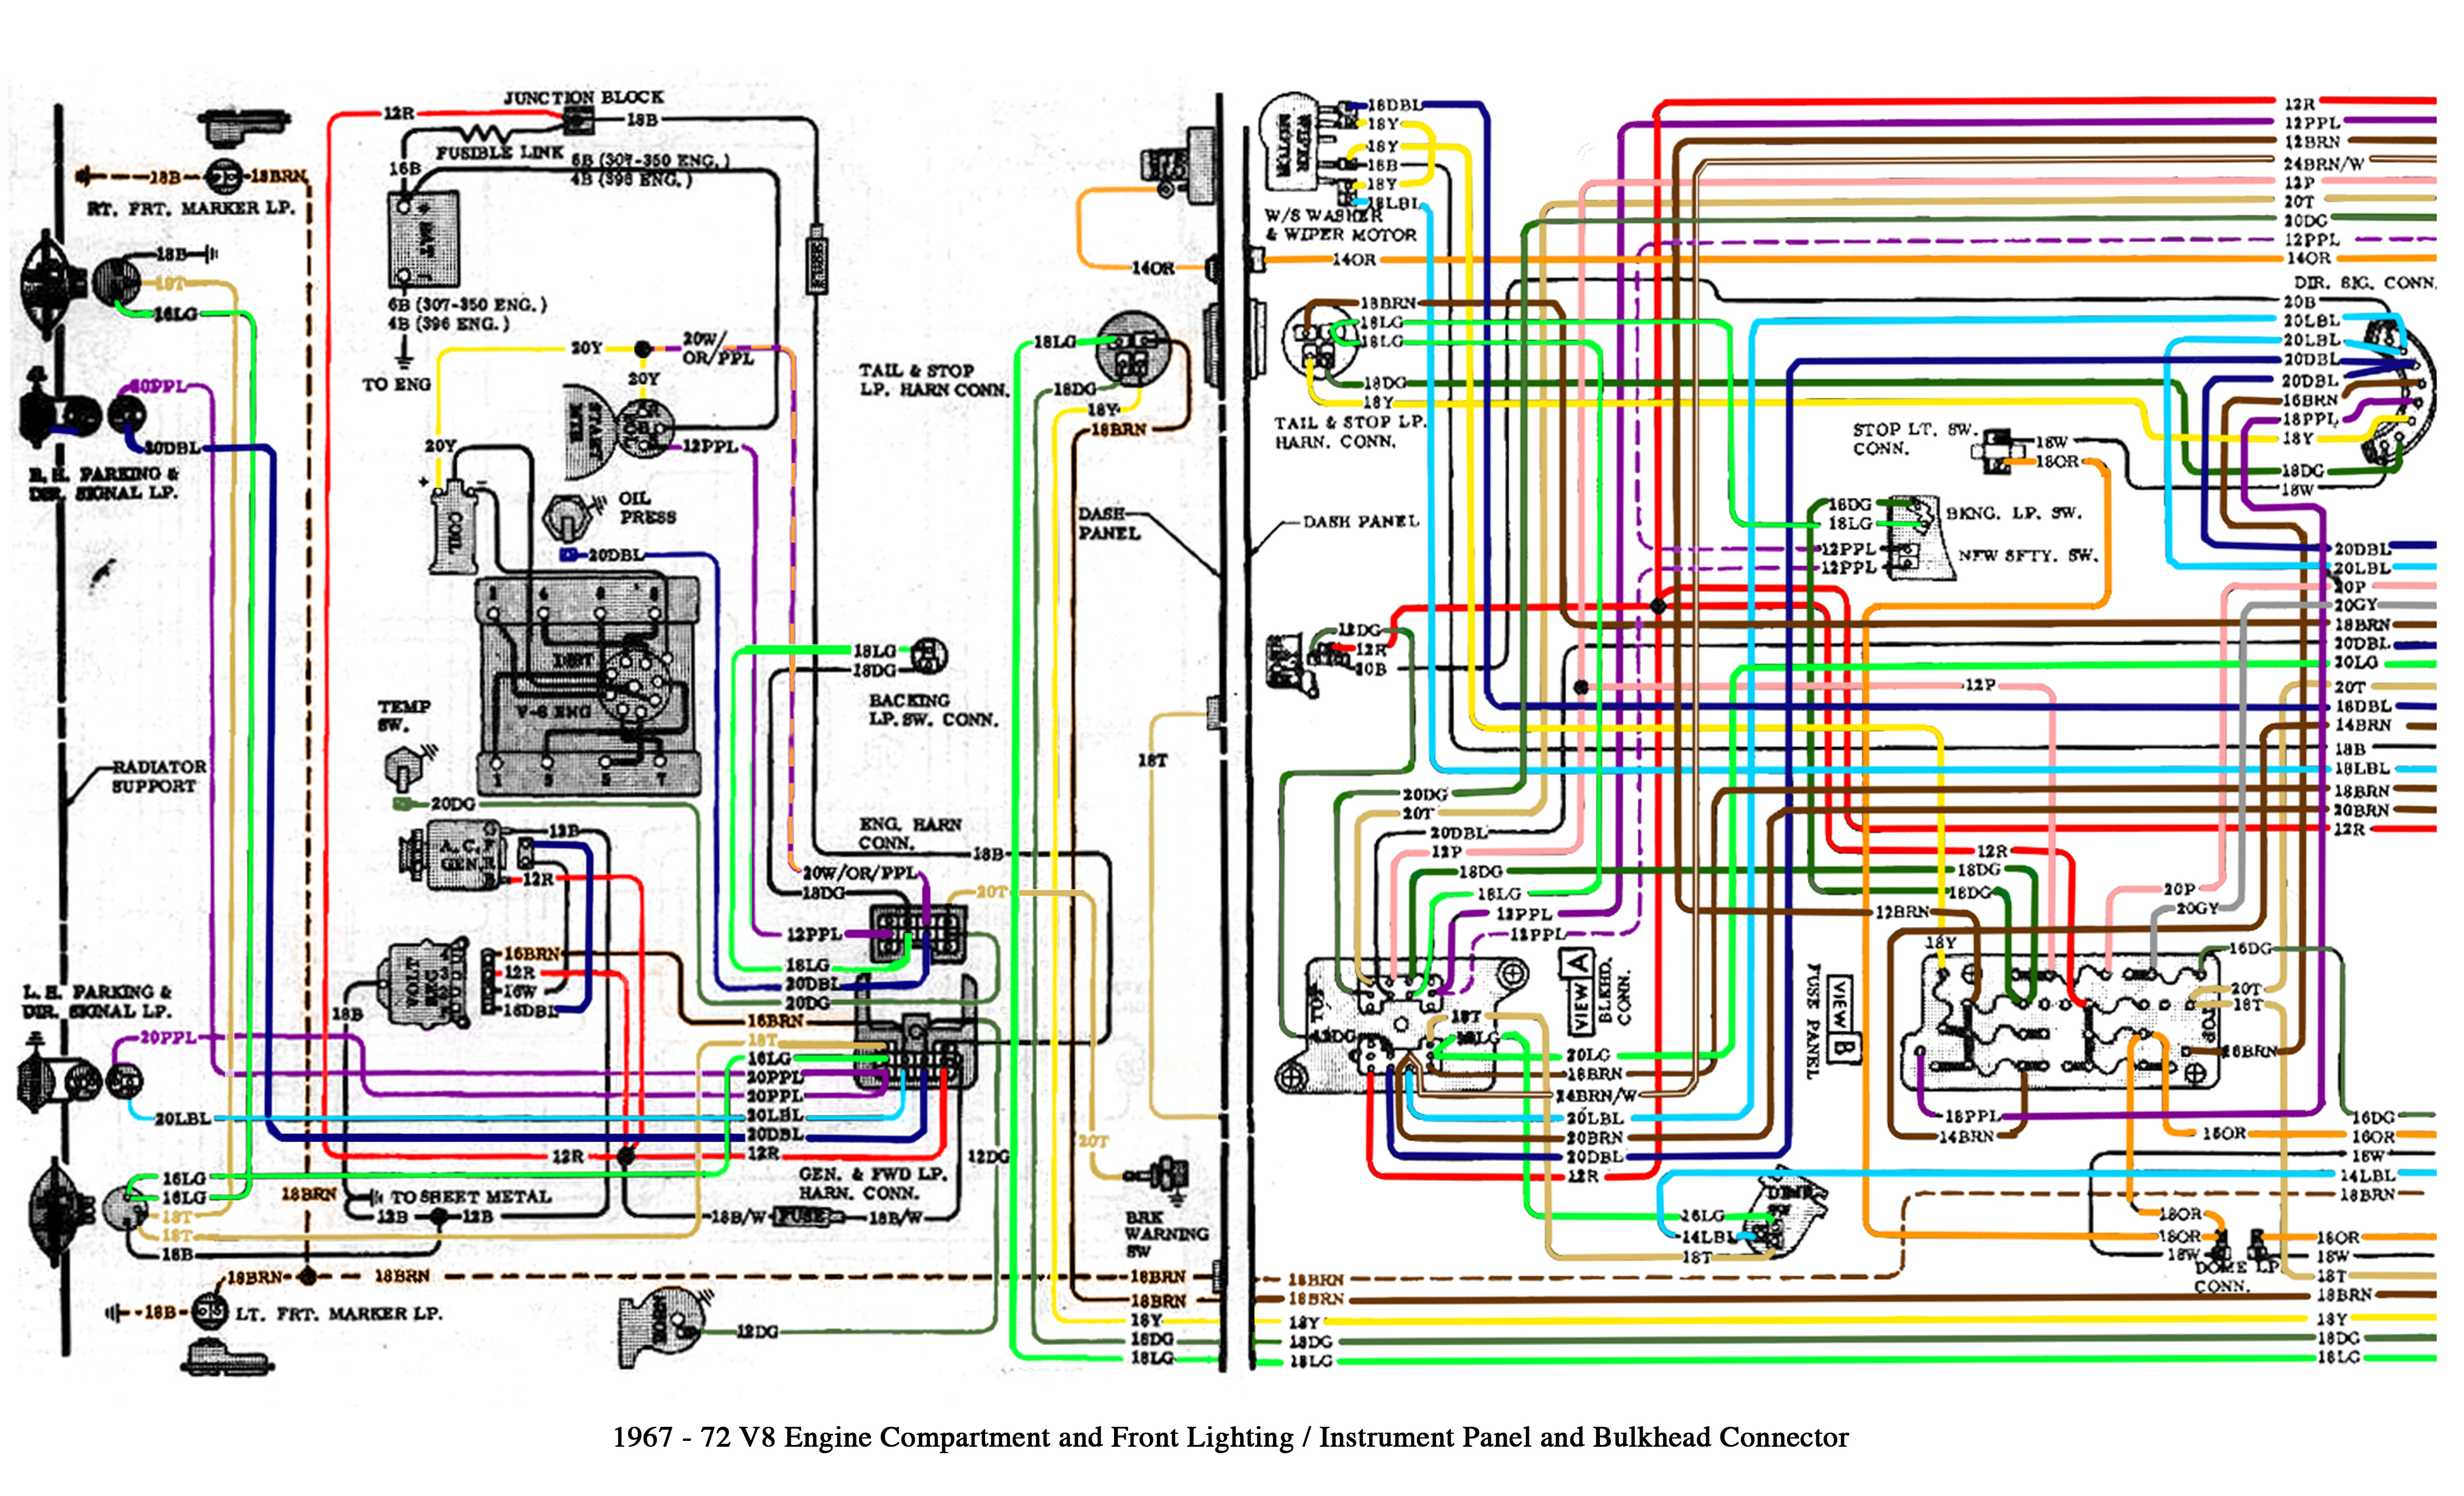 1984 Chevy C10 Wiring Harness - Wiring Diagrams Hubs - Brake Light Wiring Diagram Chevy